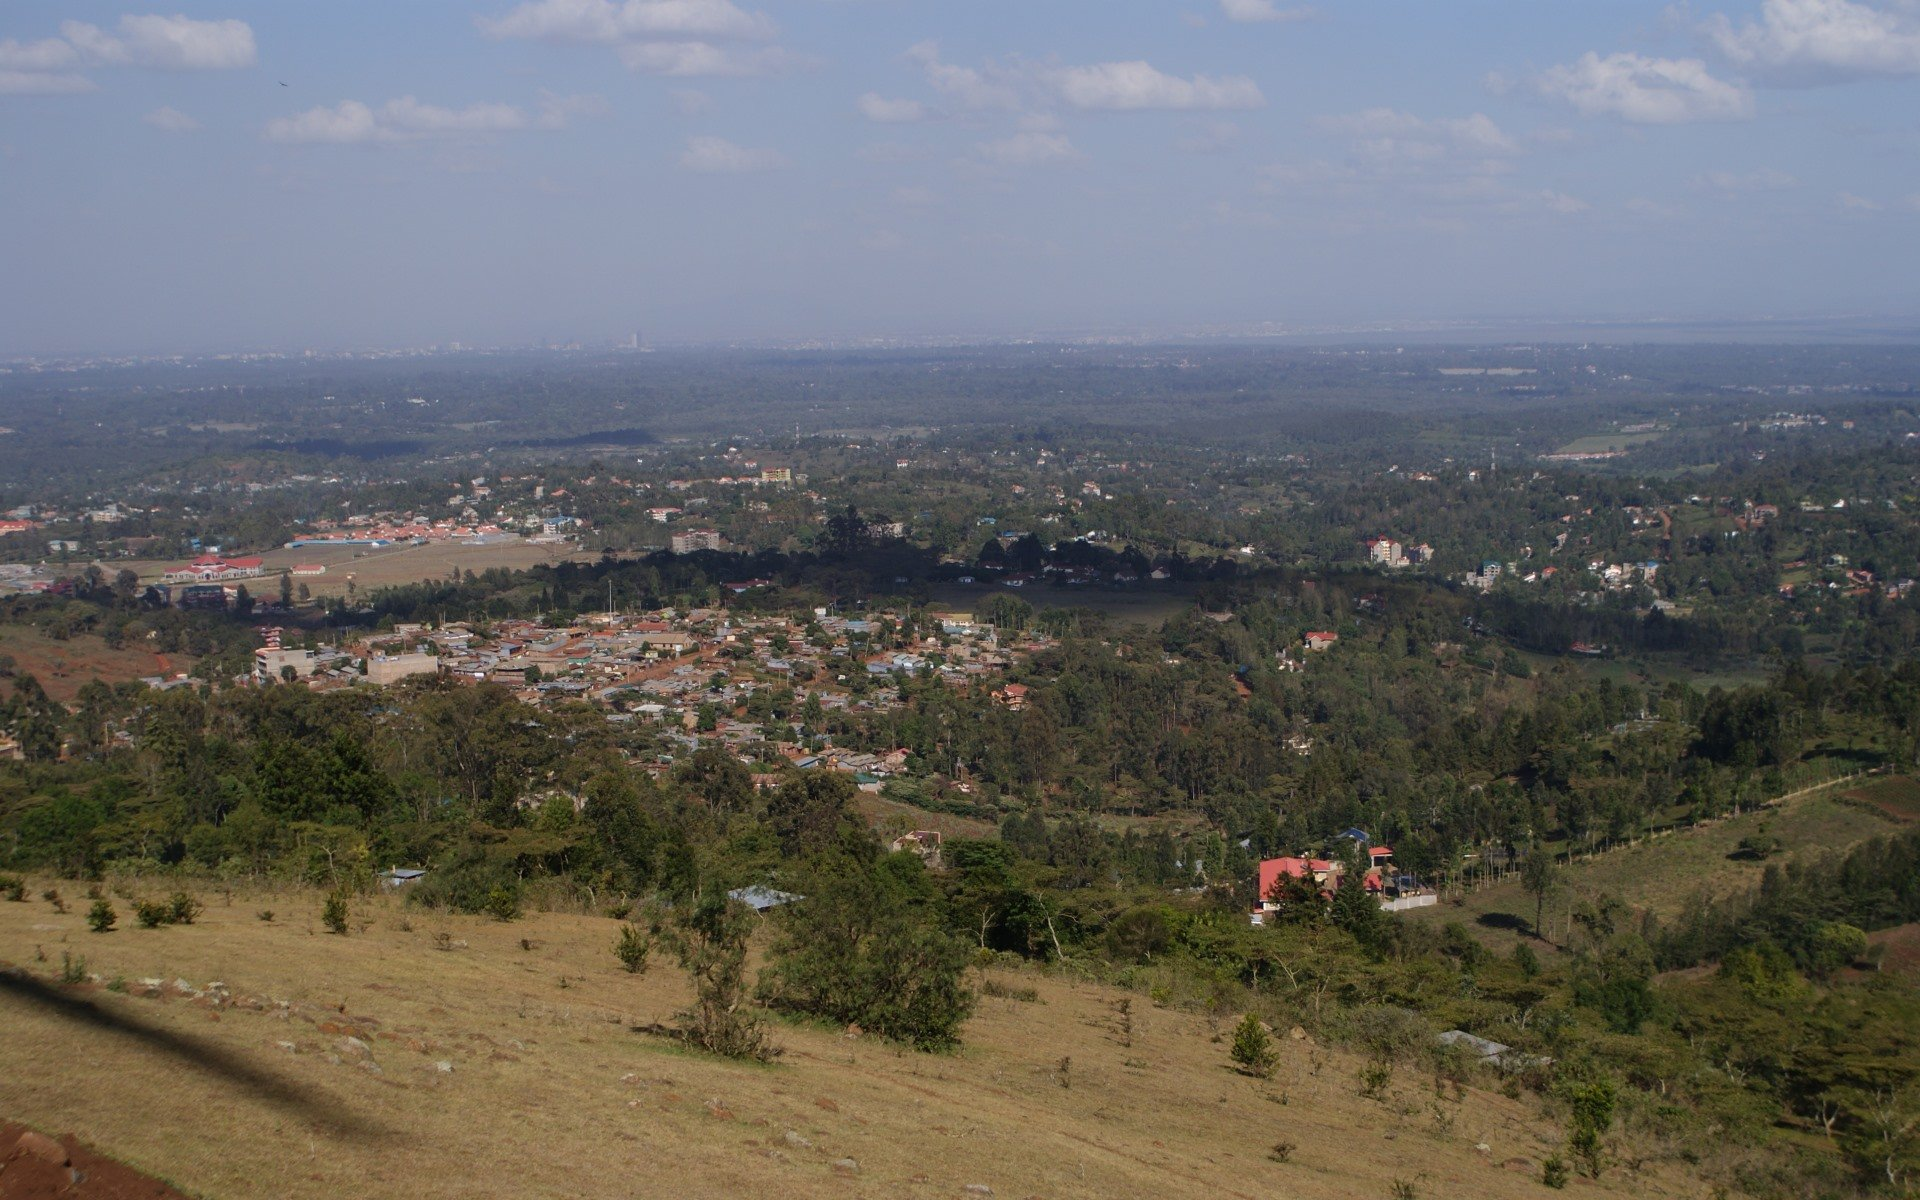 A view of Ngong town. You can start your hike from here.